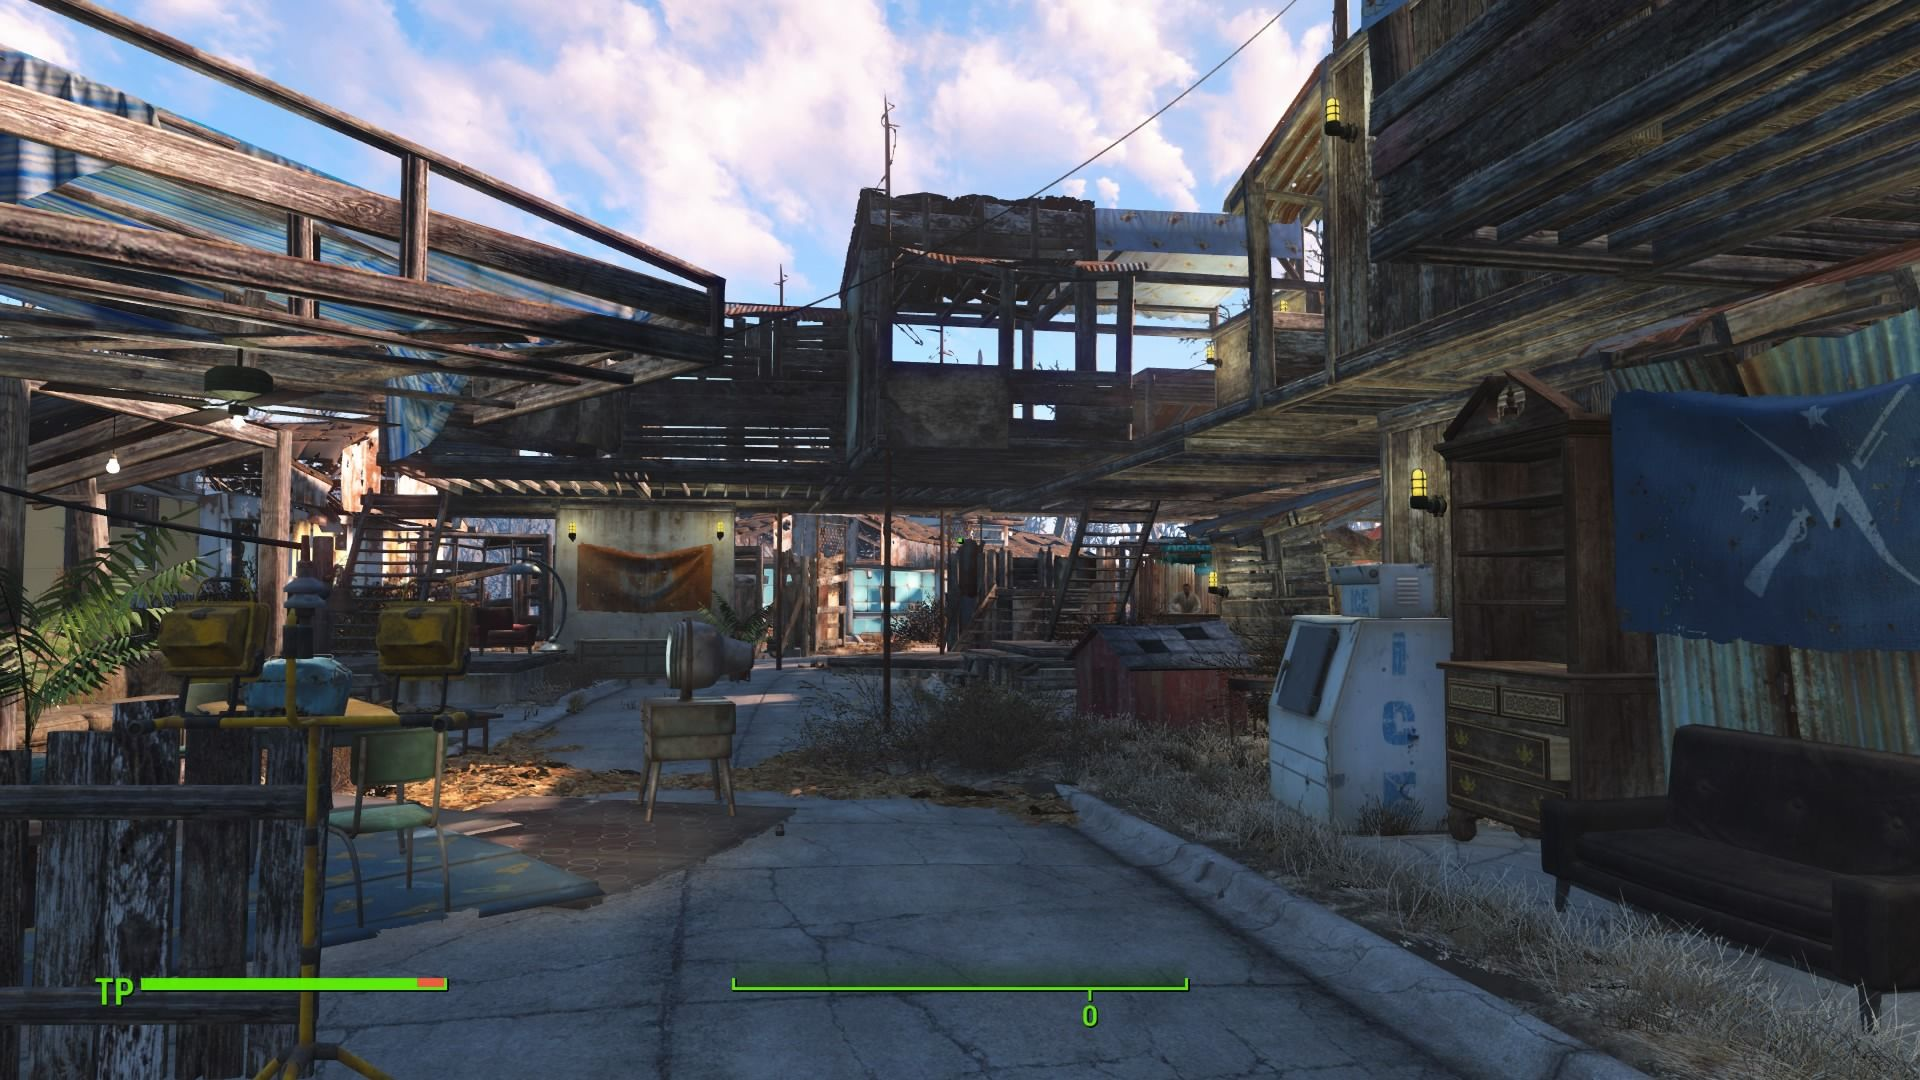 Fallout 4 Schone Hauser Bauen Structures Road Alley